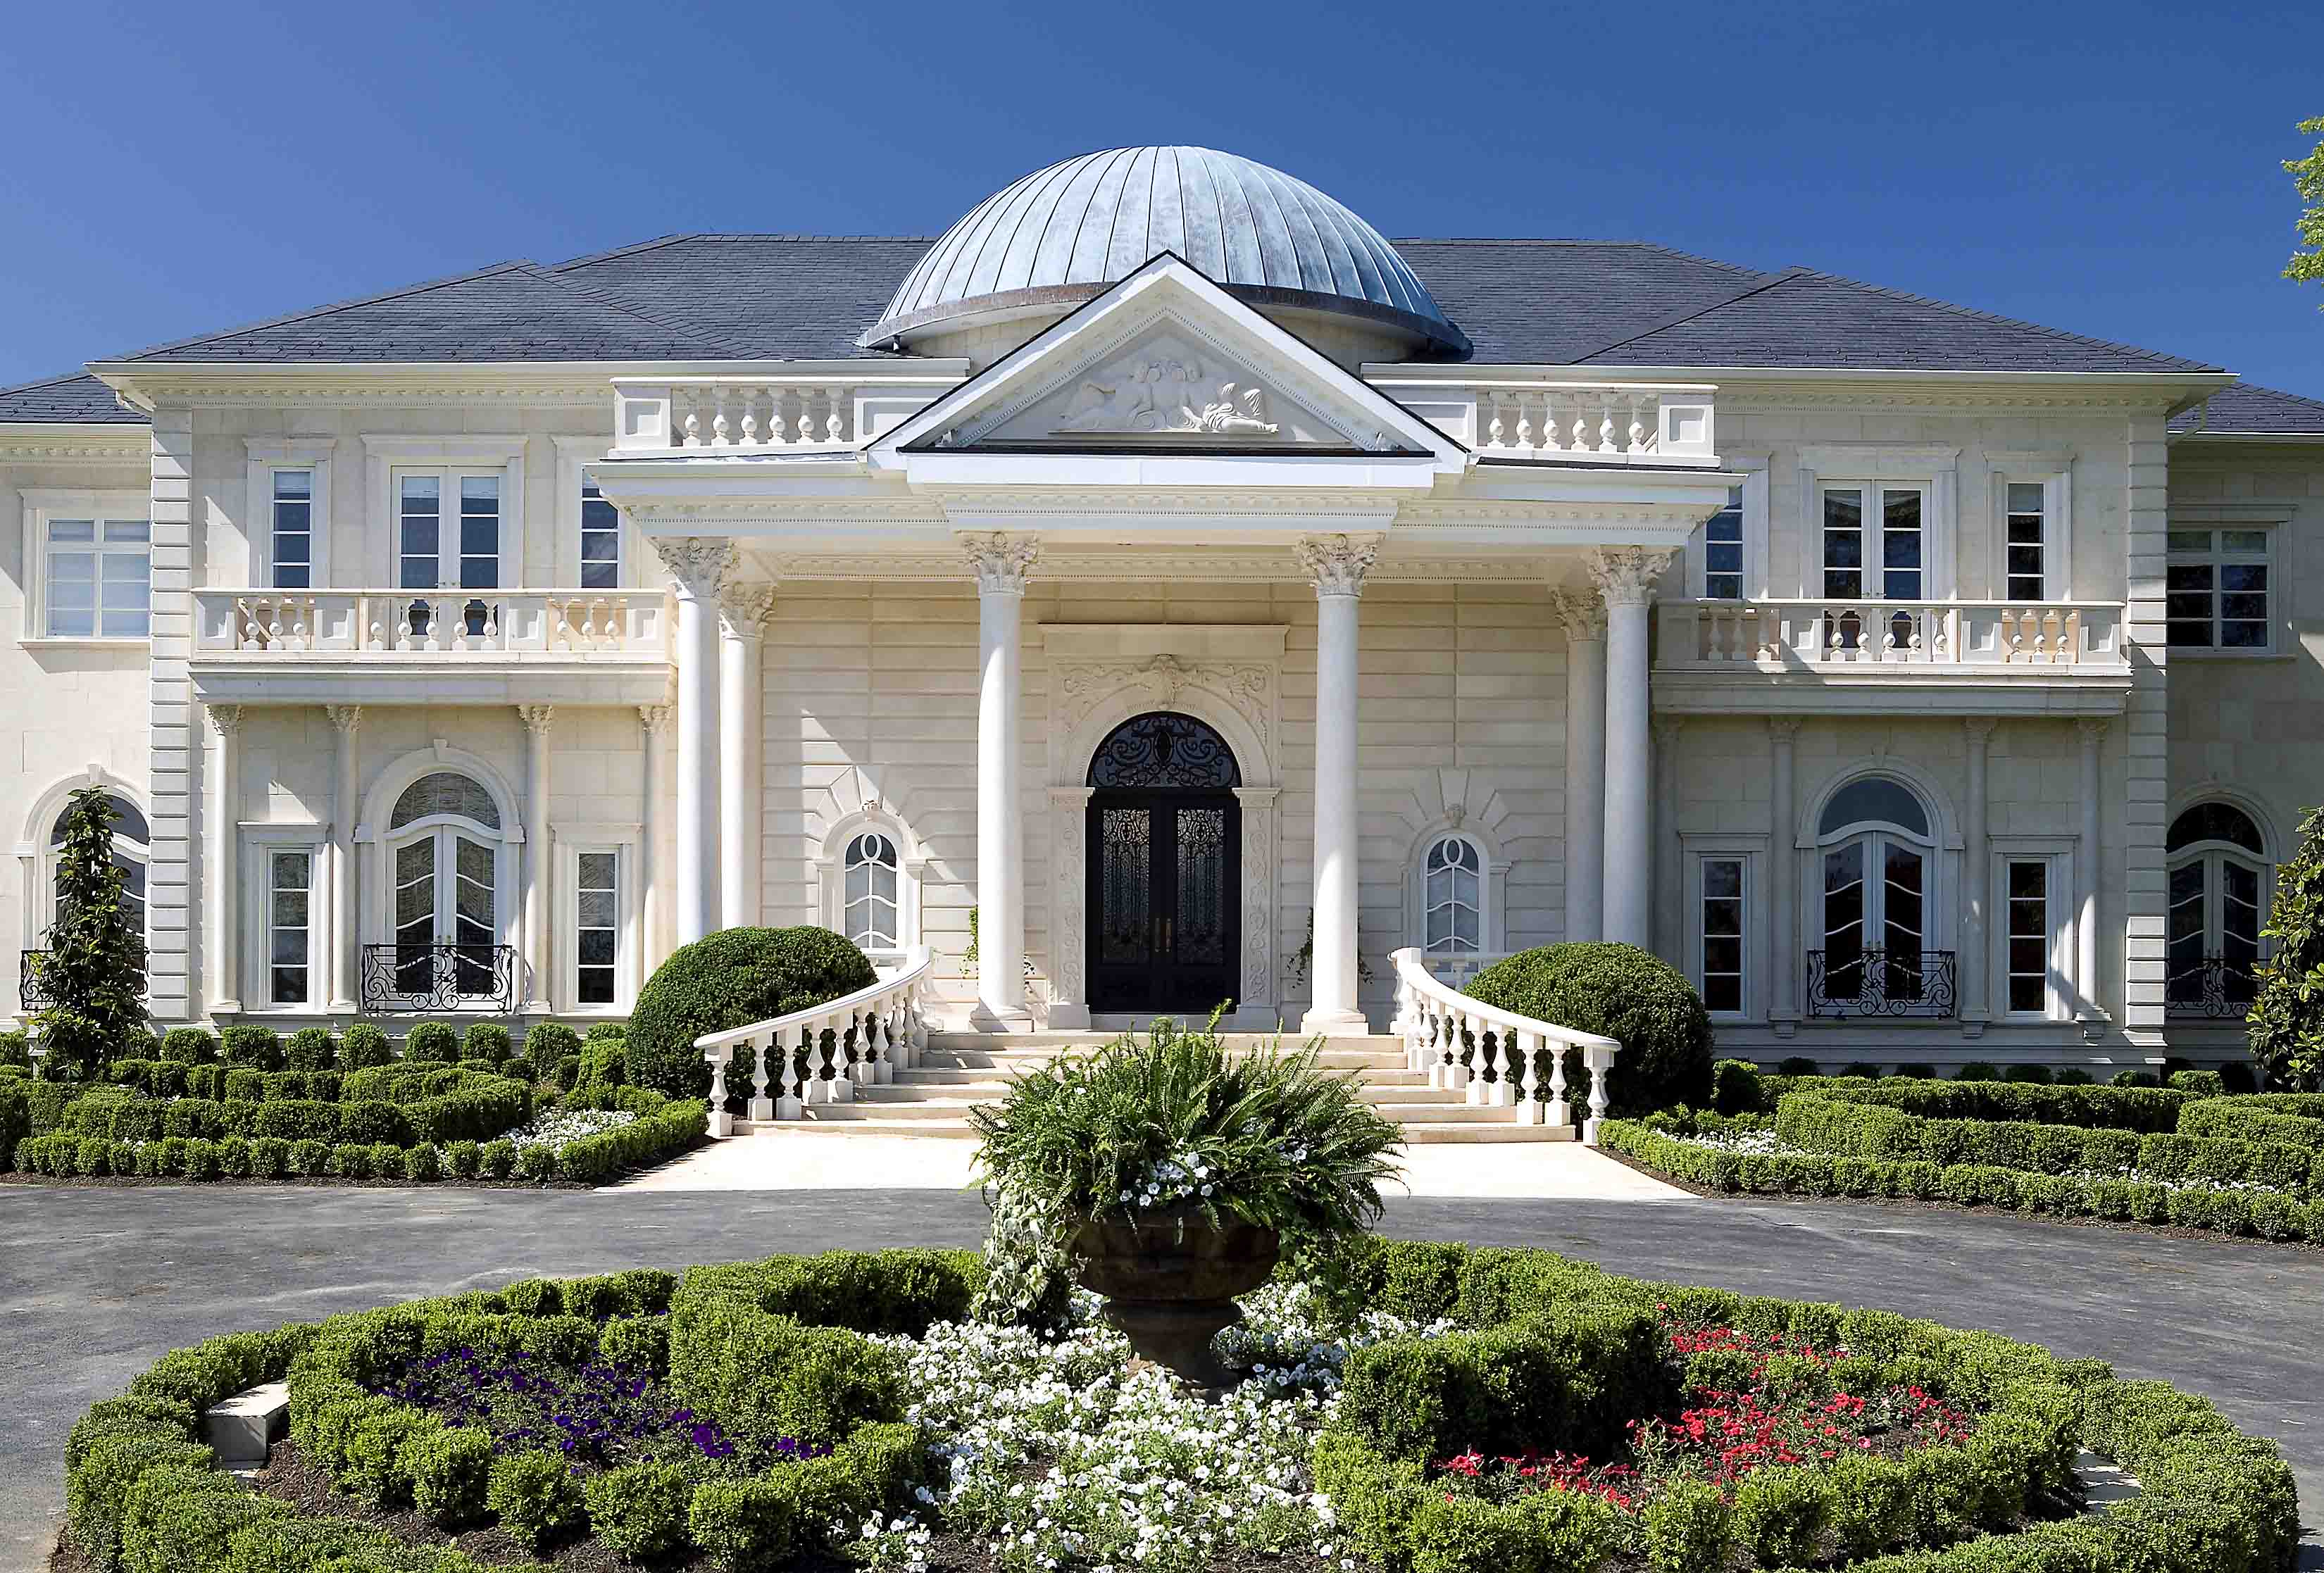 Entrance of a mansion with dome and white columns with a circular driveway and fountain